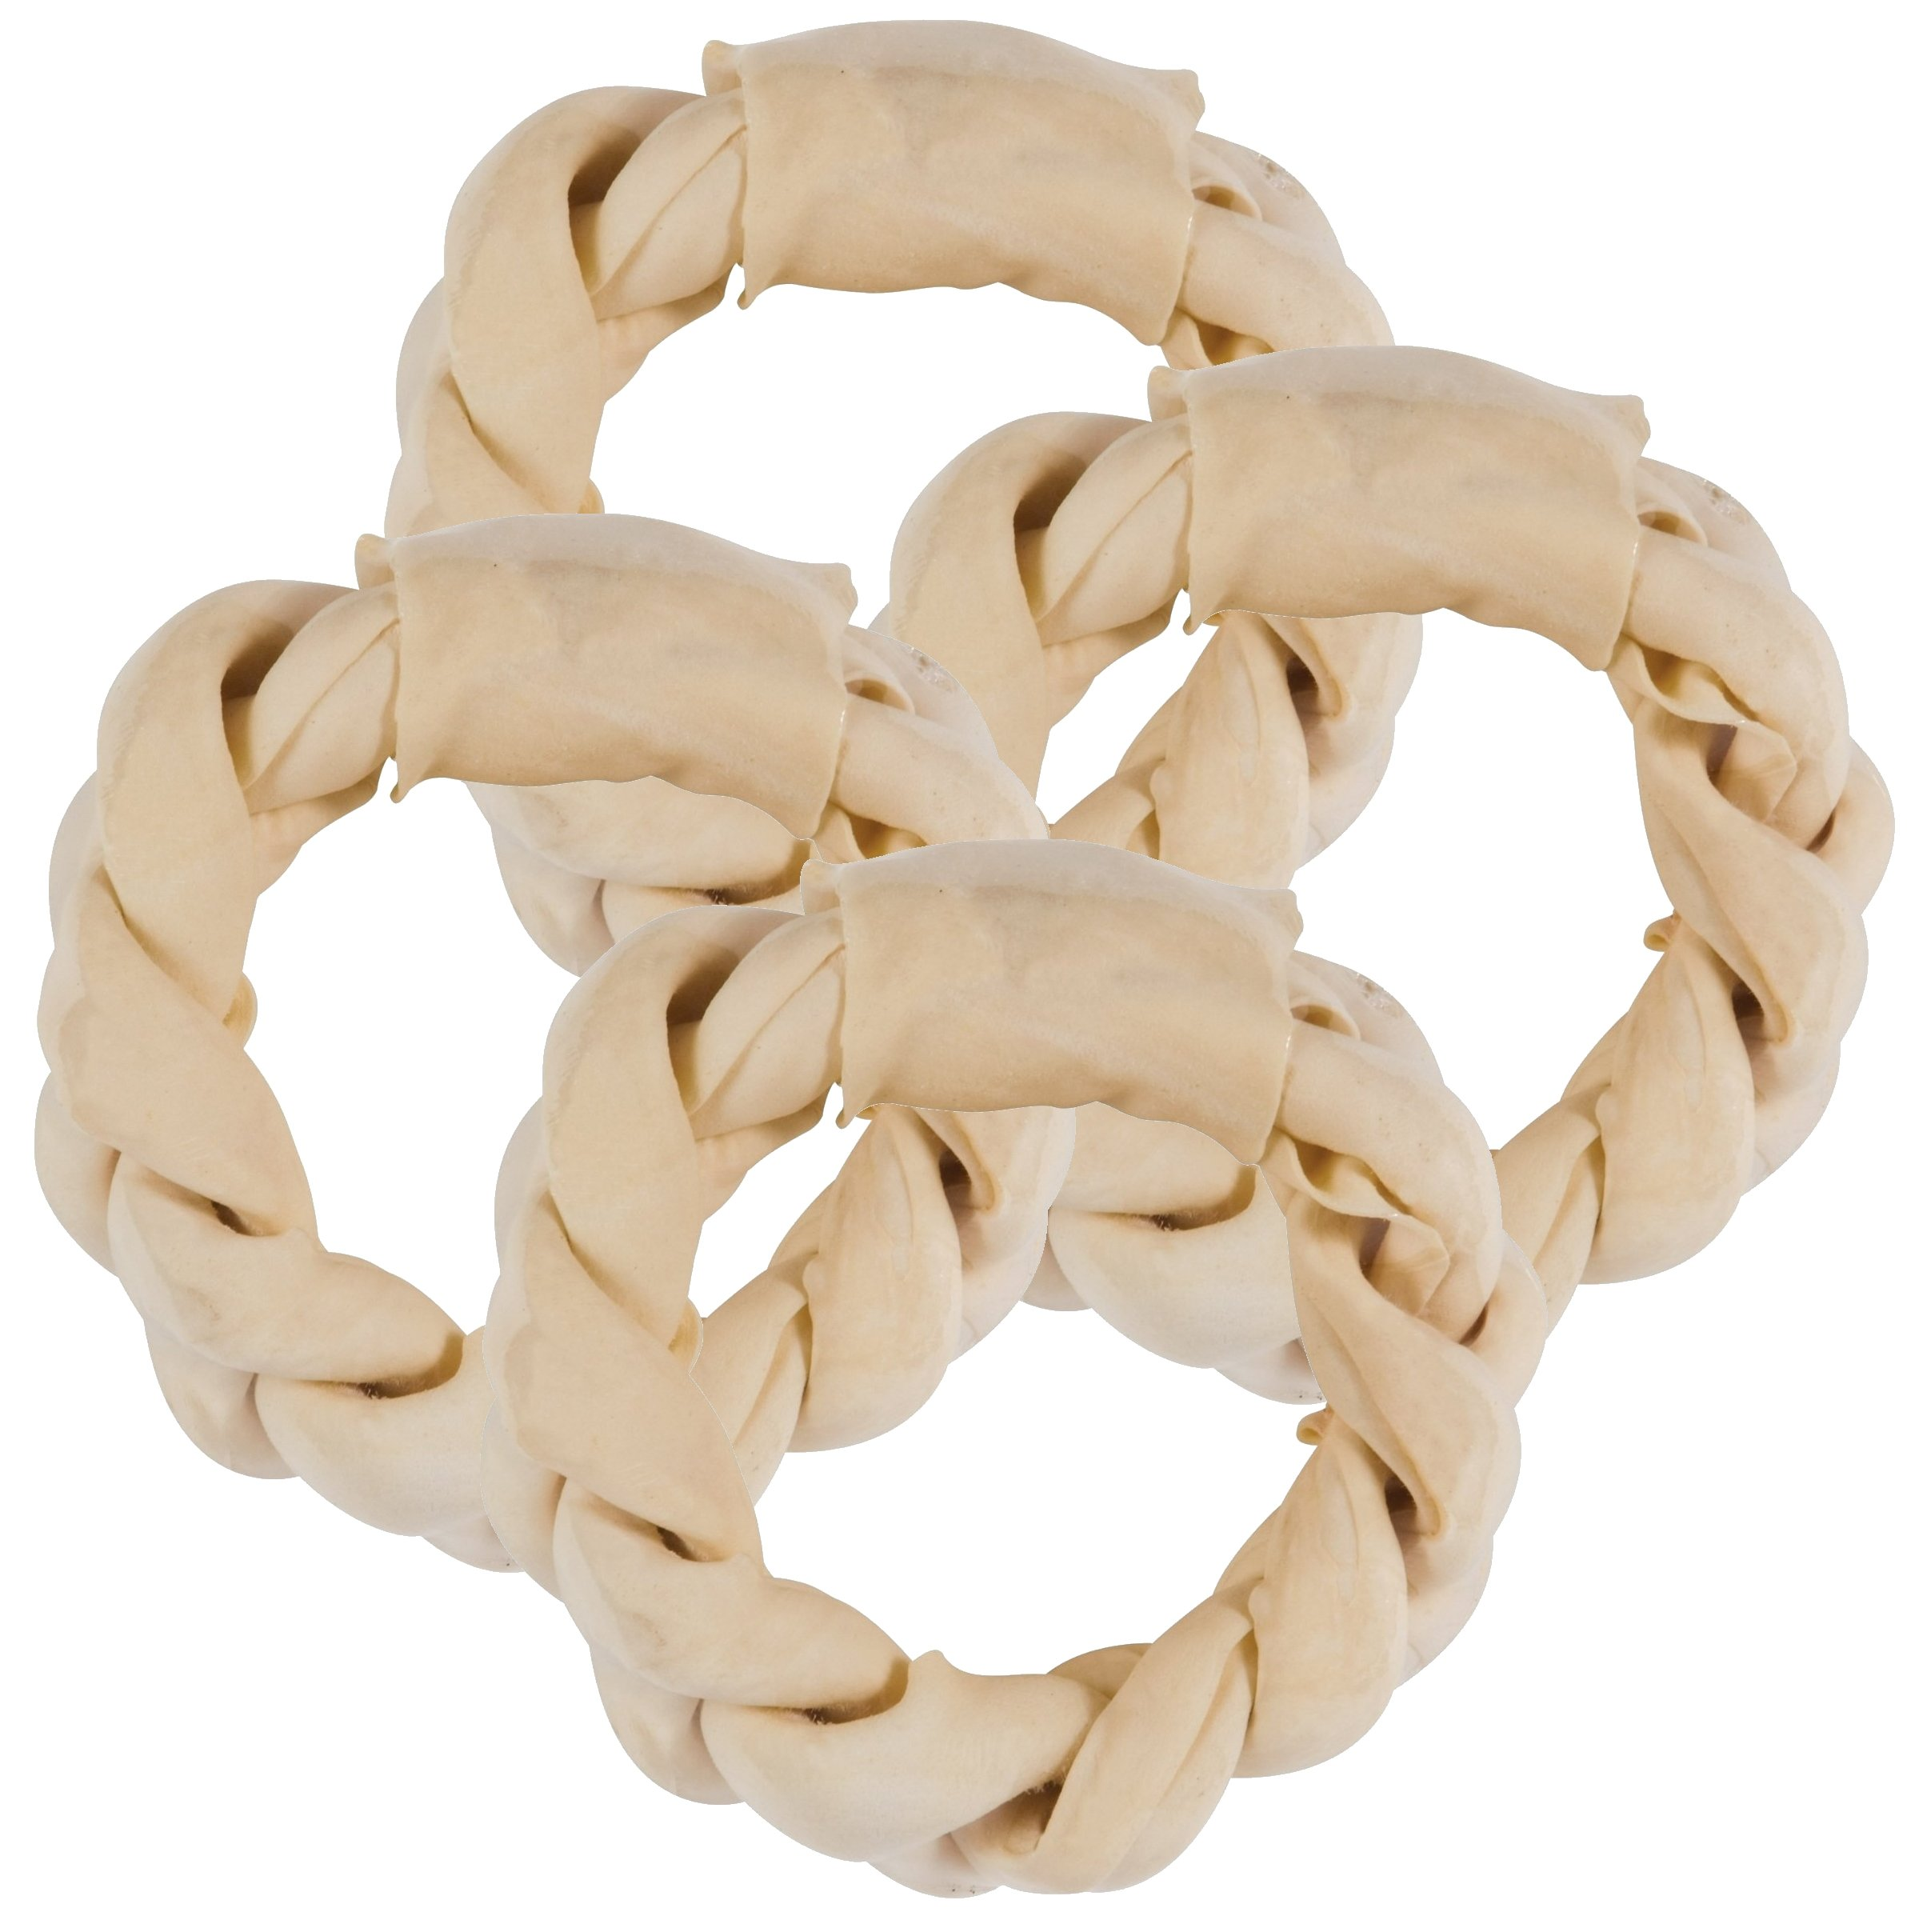 Chunky Chews 8'' Braided Rawhide Rings for Large Dogs (Natural, 4-Pack)